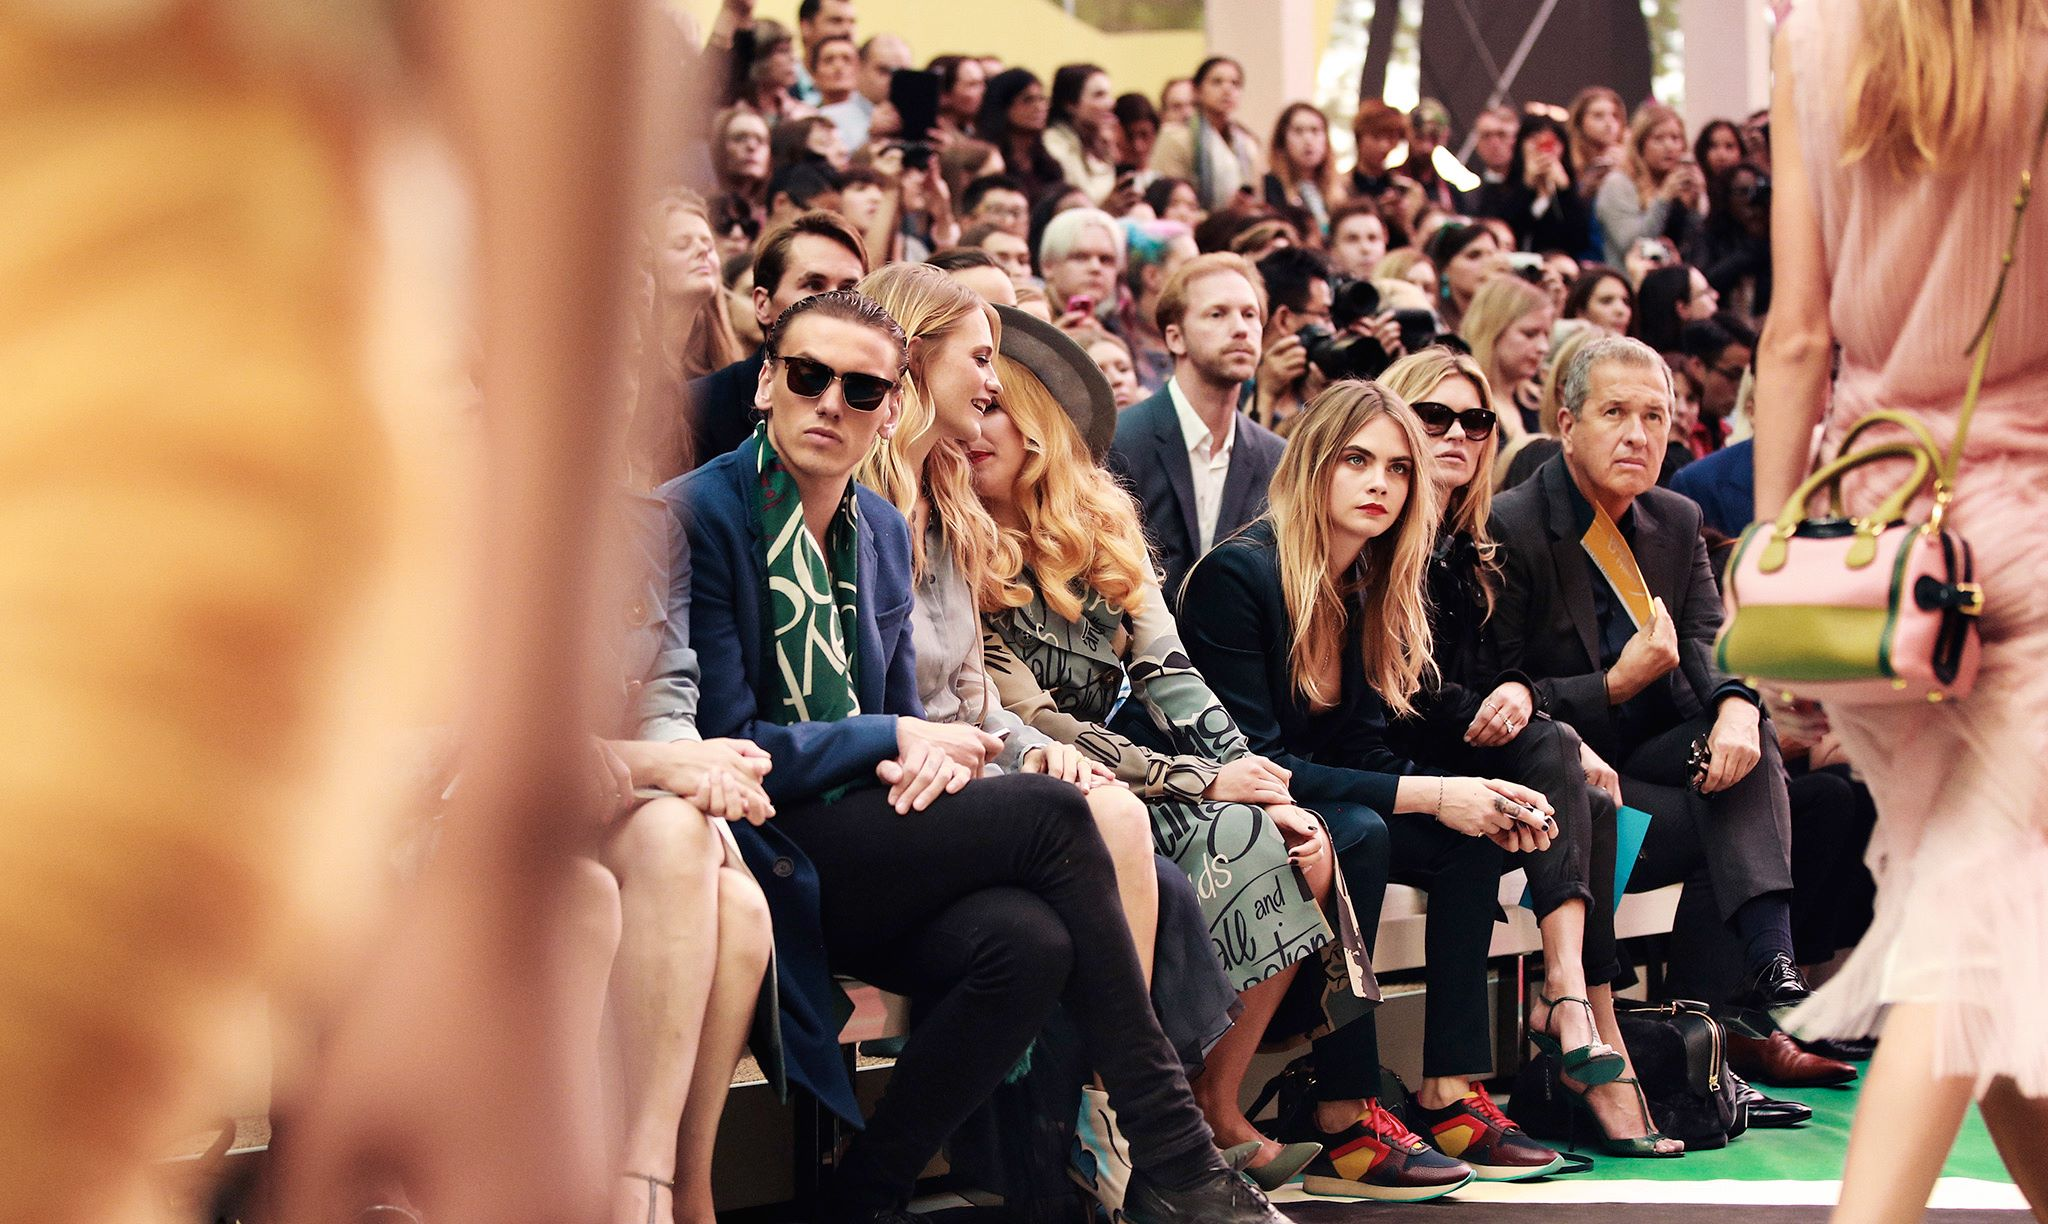 Backstage at the Burberry Prorsum Spring 2015 Show 27